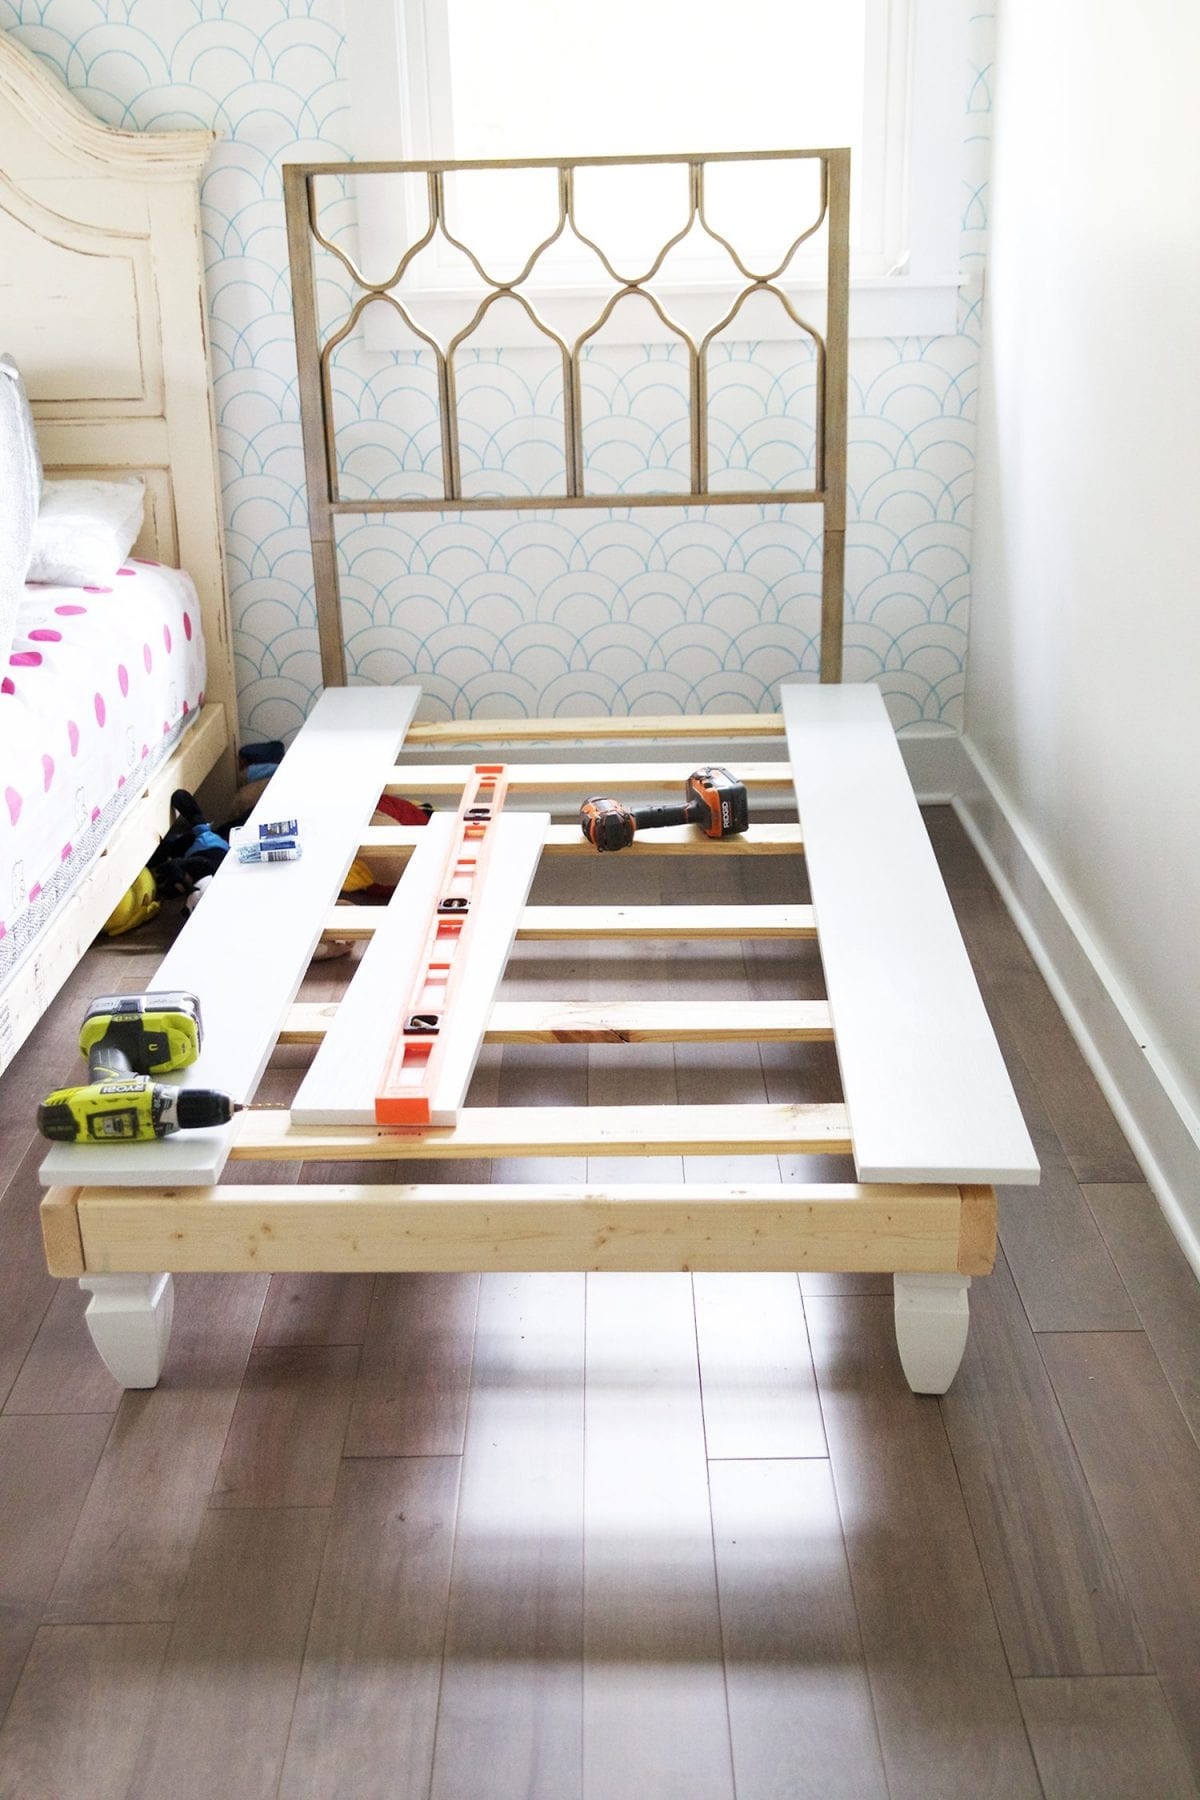 Floor bed frame bed stand ideas who needs a bed anyway for Make your own bed frame ideas